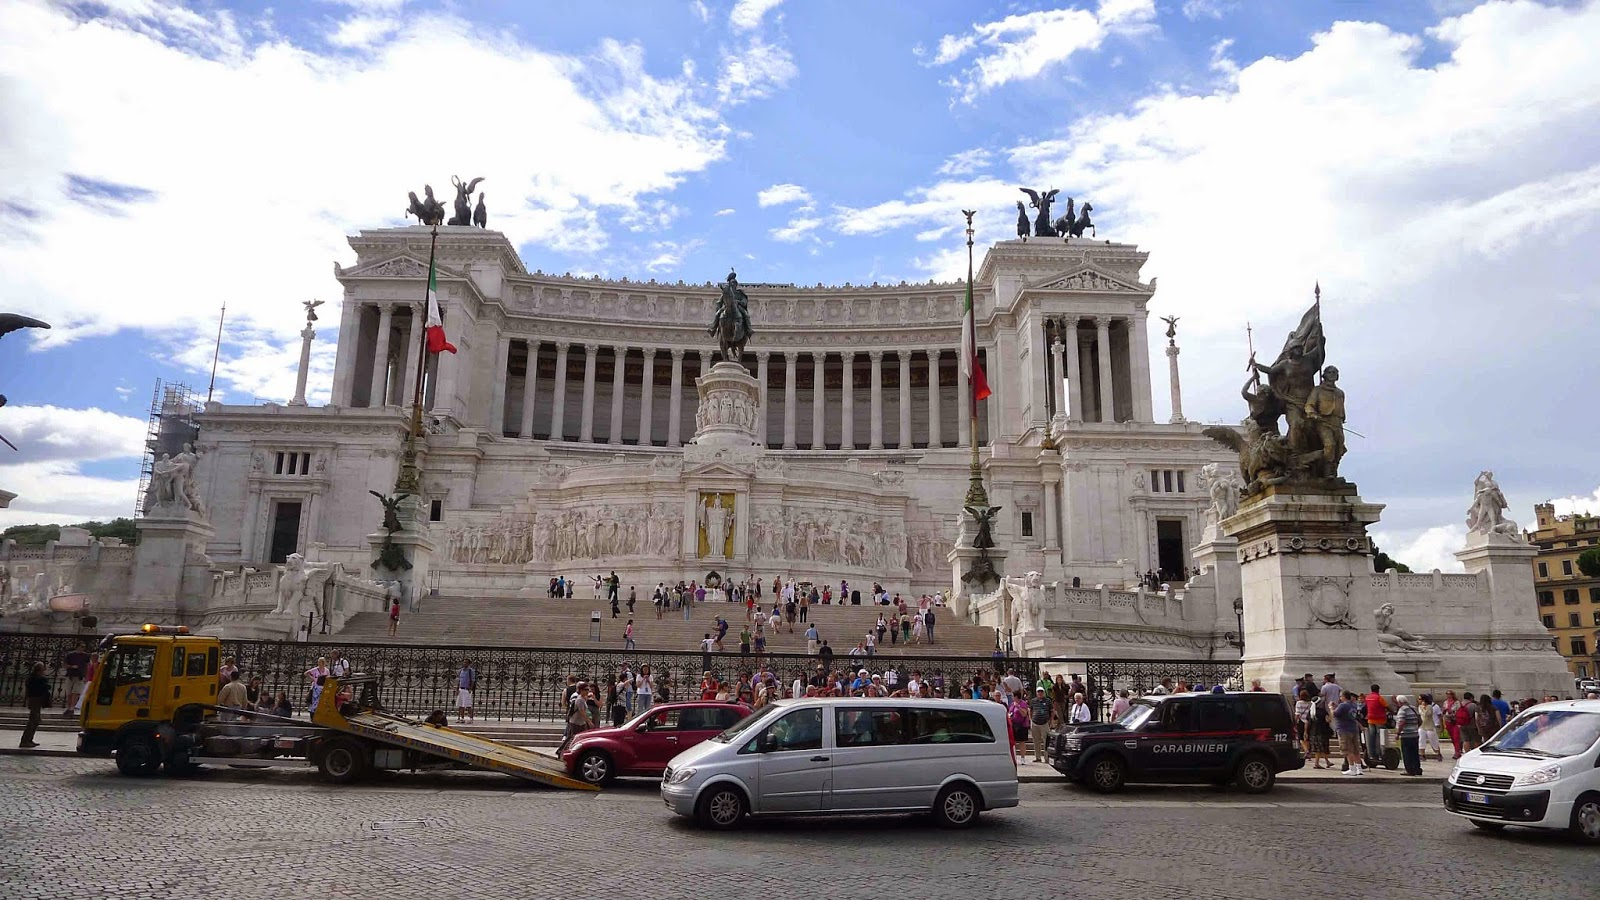 City Hall of Rome